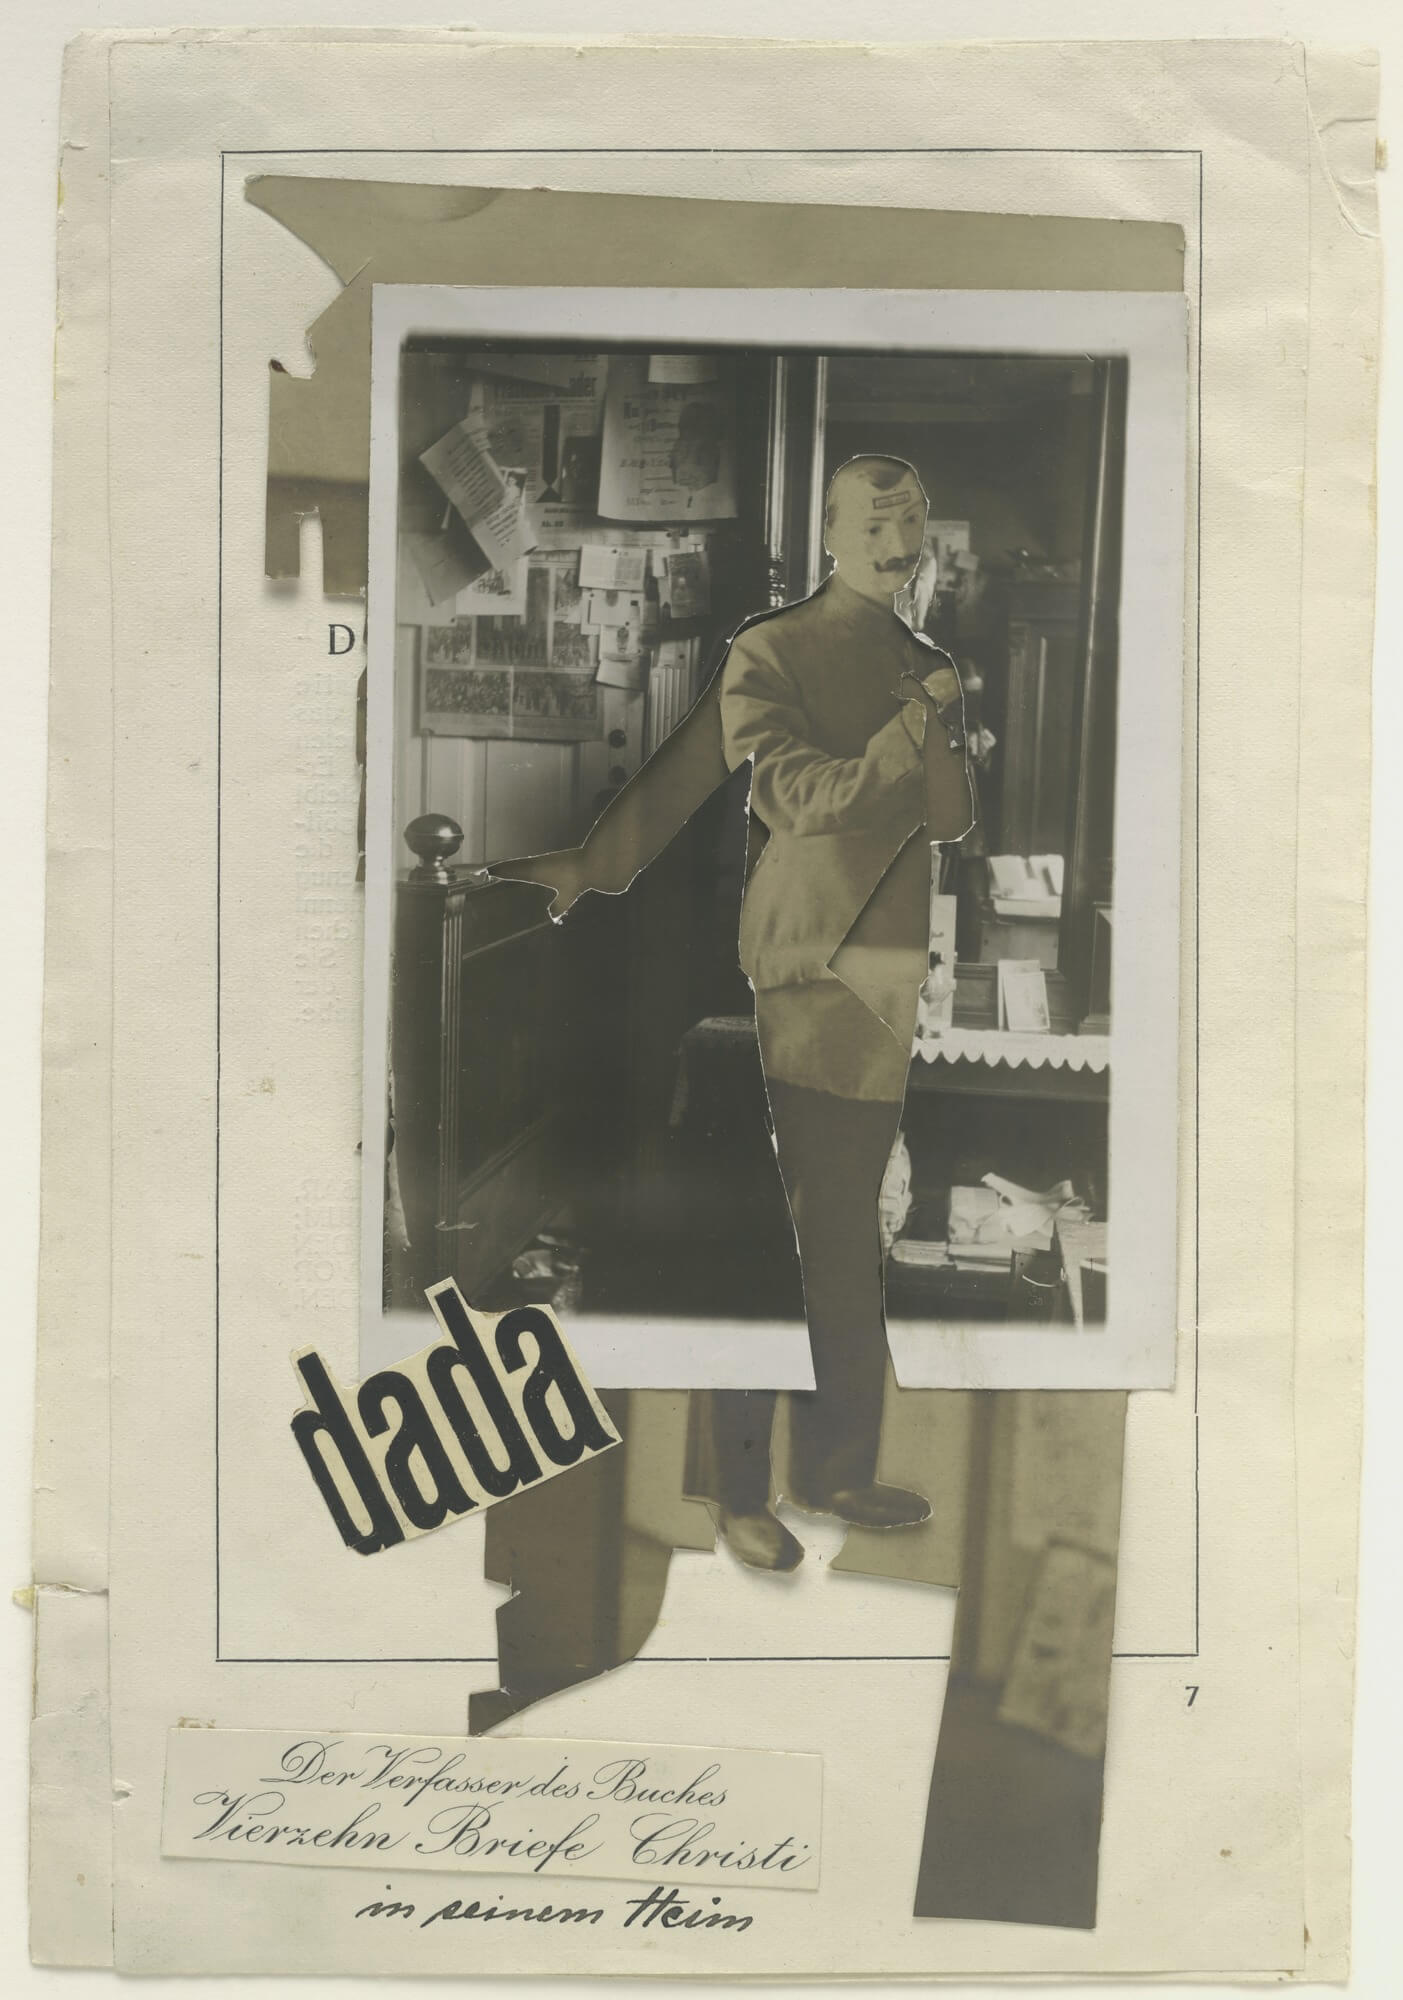 JOHANNES BAADER COLLAGE DADA